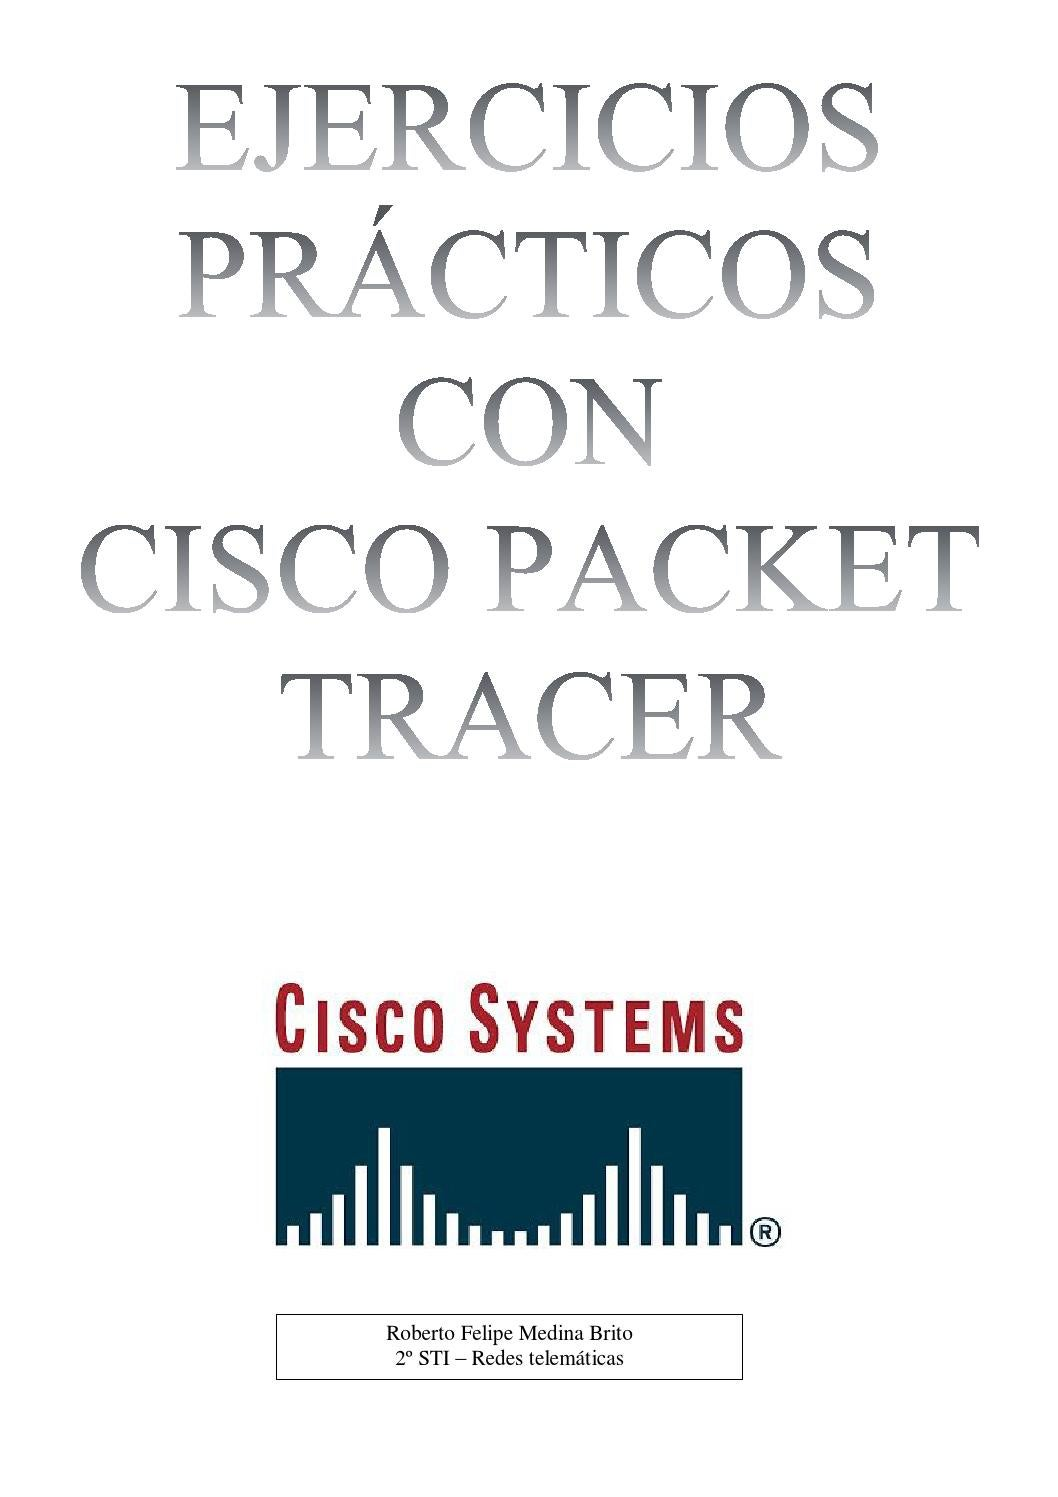 Libros Cisco Ejercicios Prácticos De Redes De Datos Con Cisco Packet Tracer